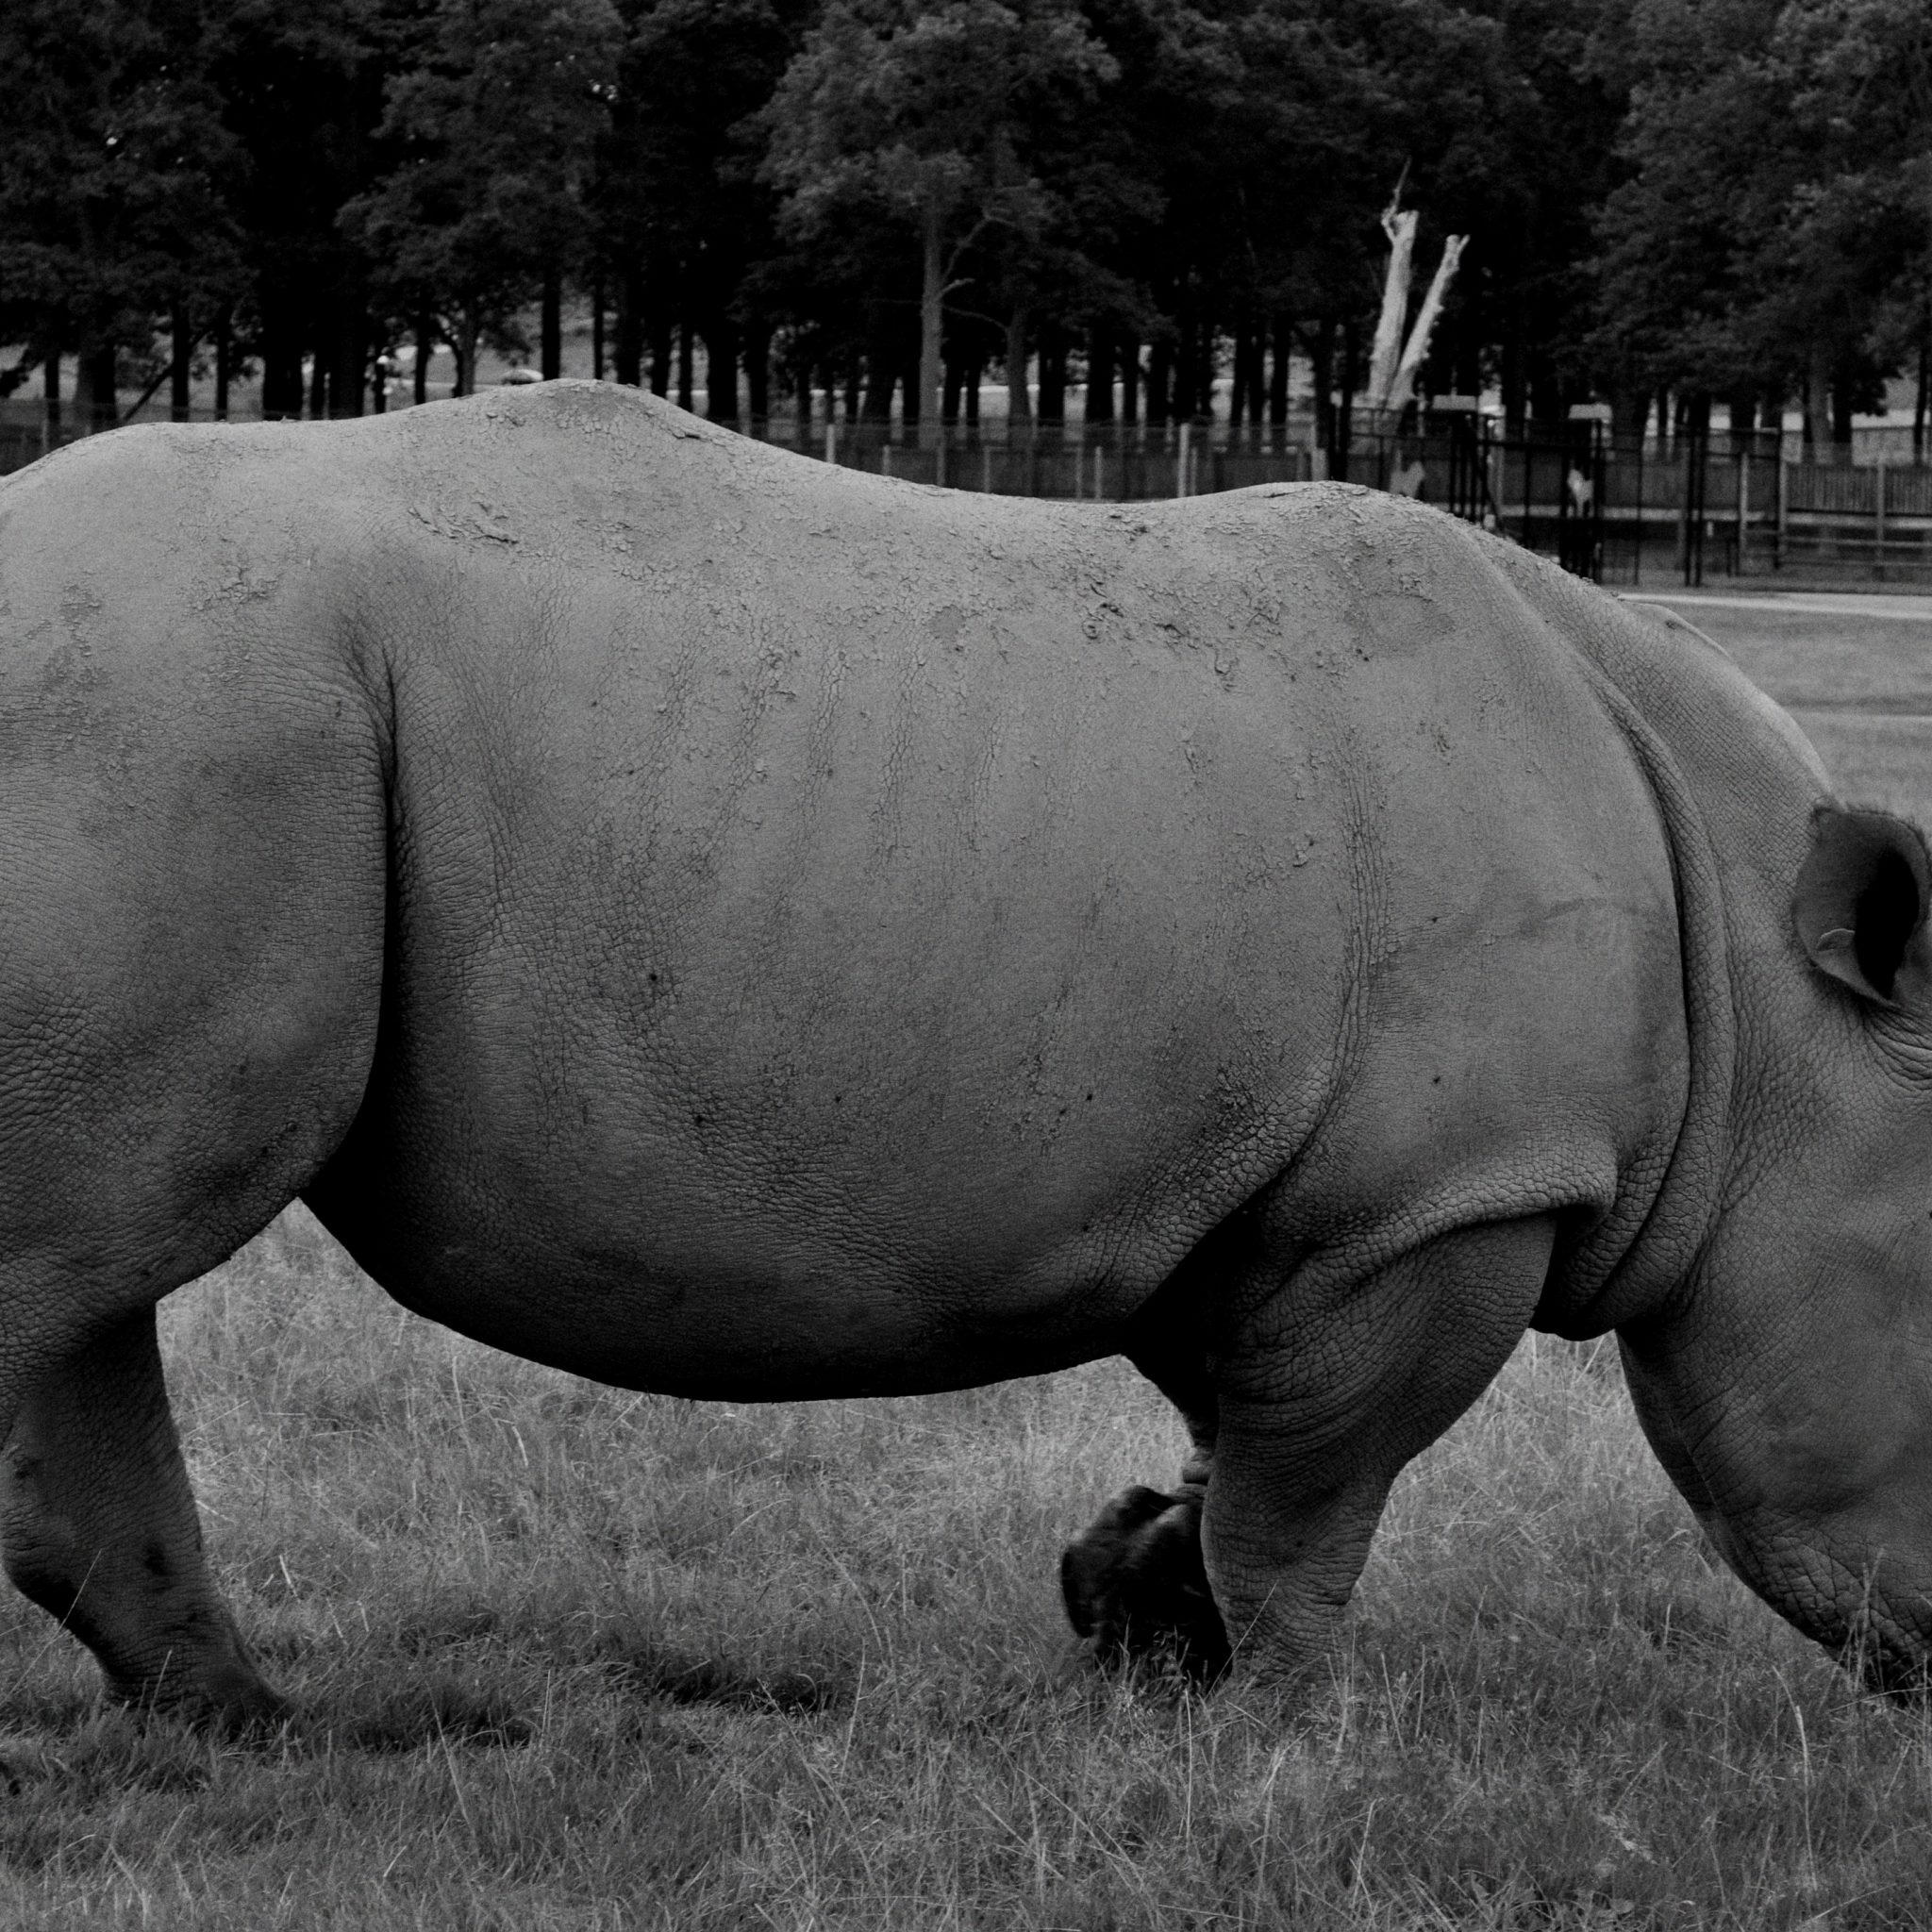 Zoos can protect a rhino from poachers, but in exchange for protection the rhino loses its habitat.